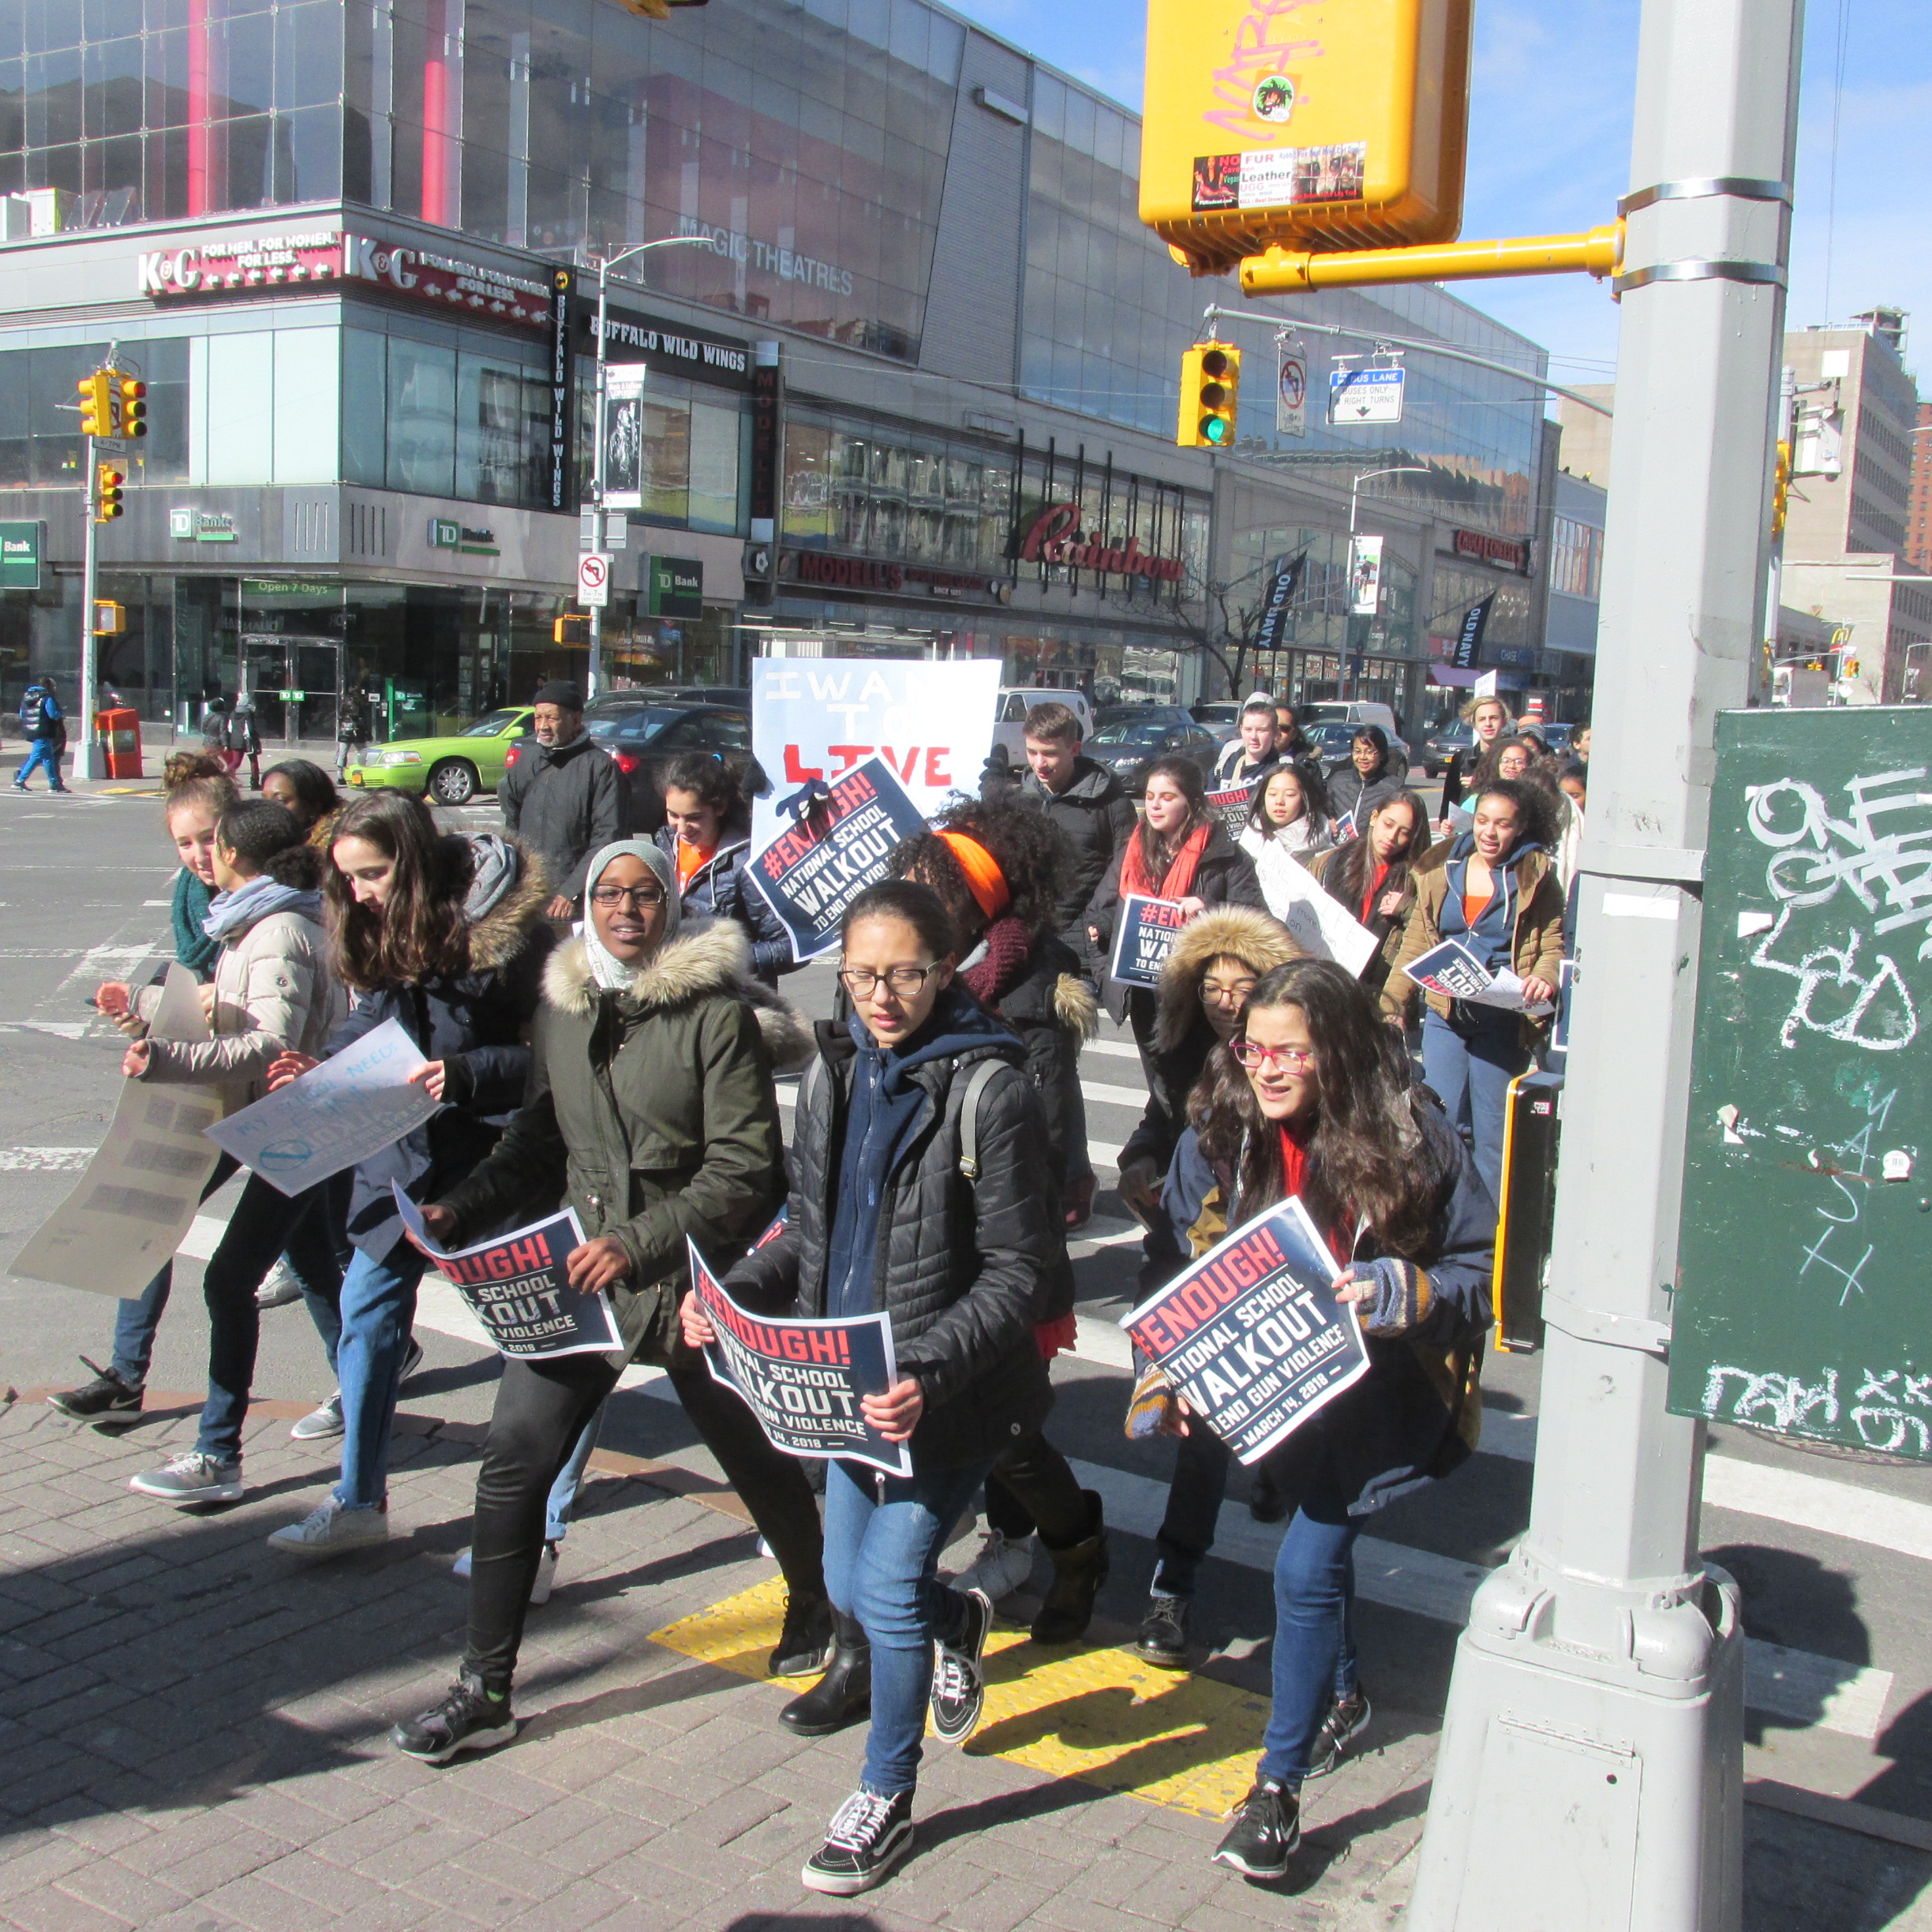 National School Walk Out: Students Participate In National School Walkout Against